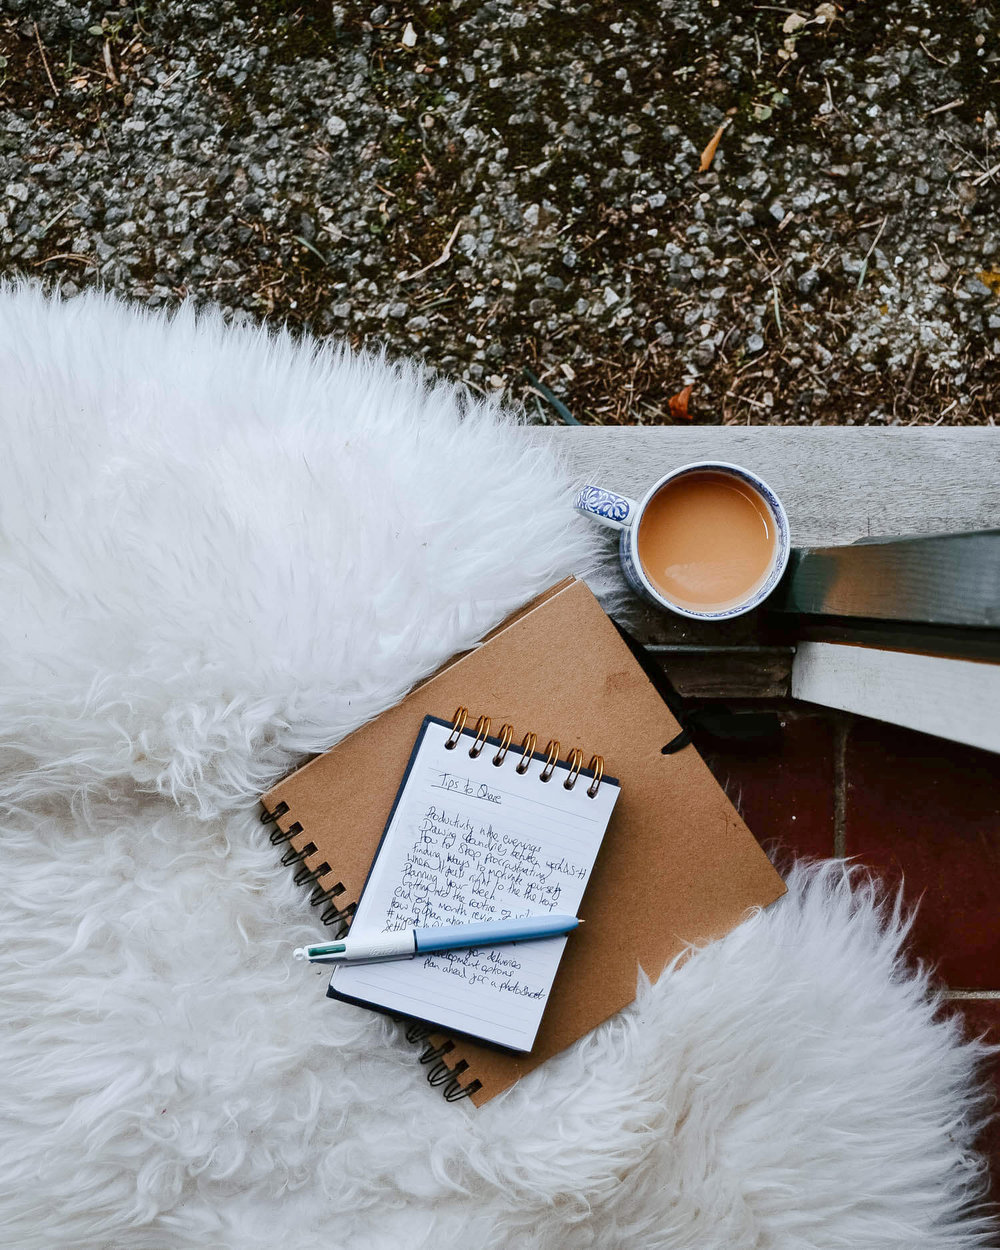 91 Magazine - effective time management for your side hustle